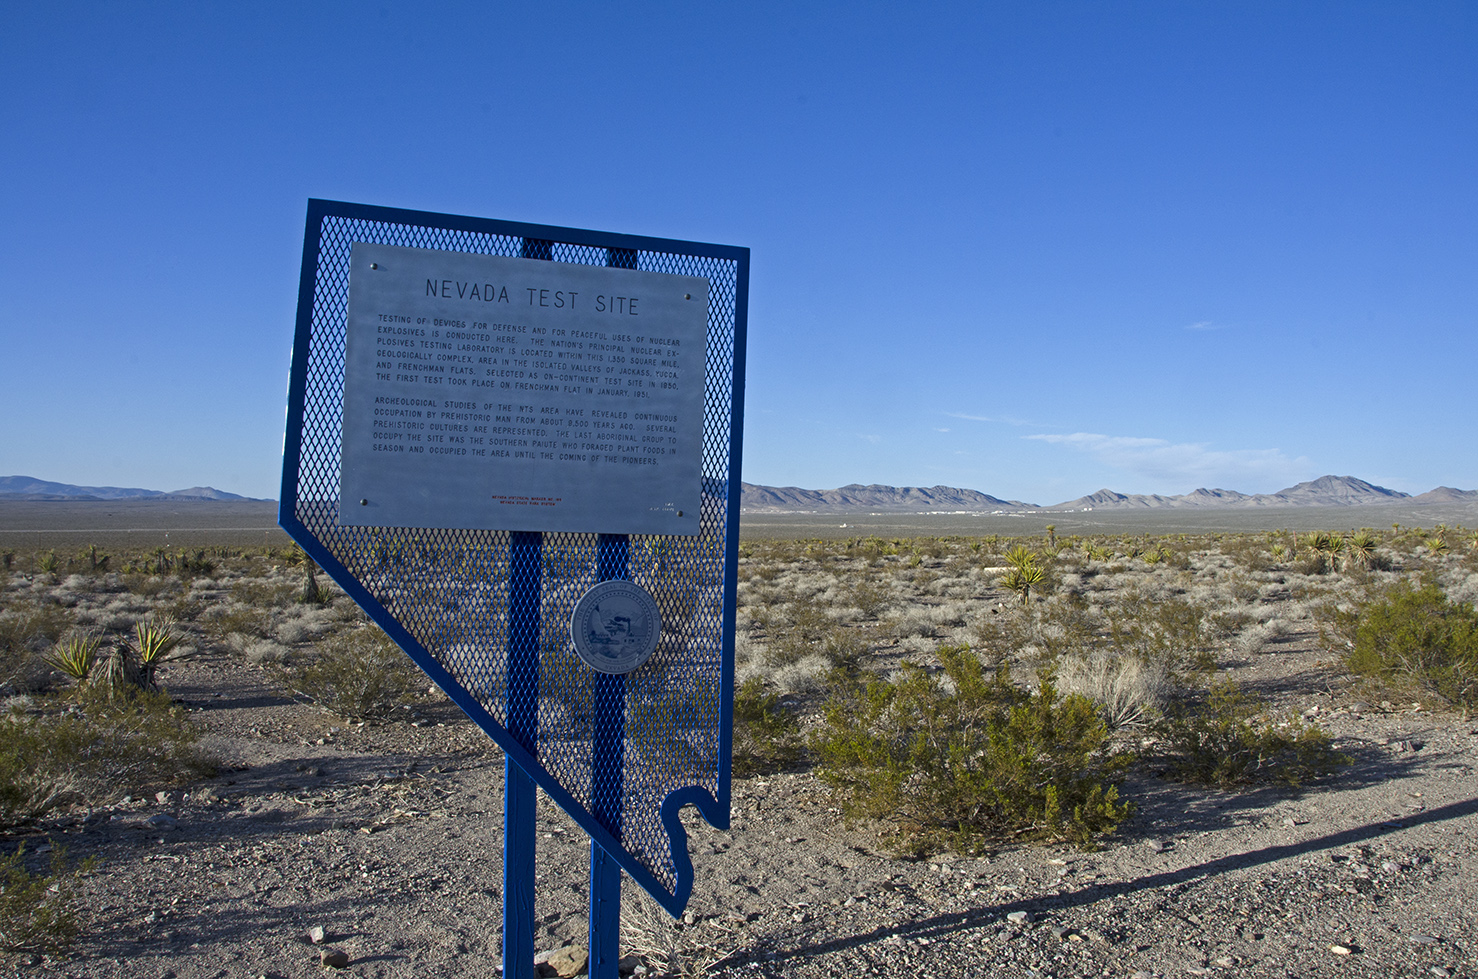 The historic marker at the side of the road.